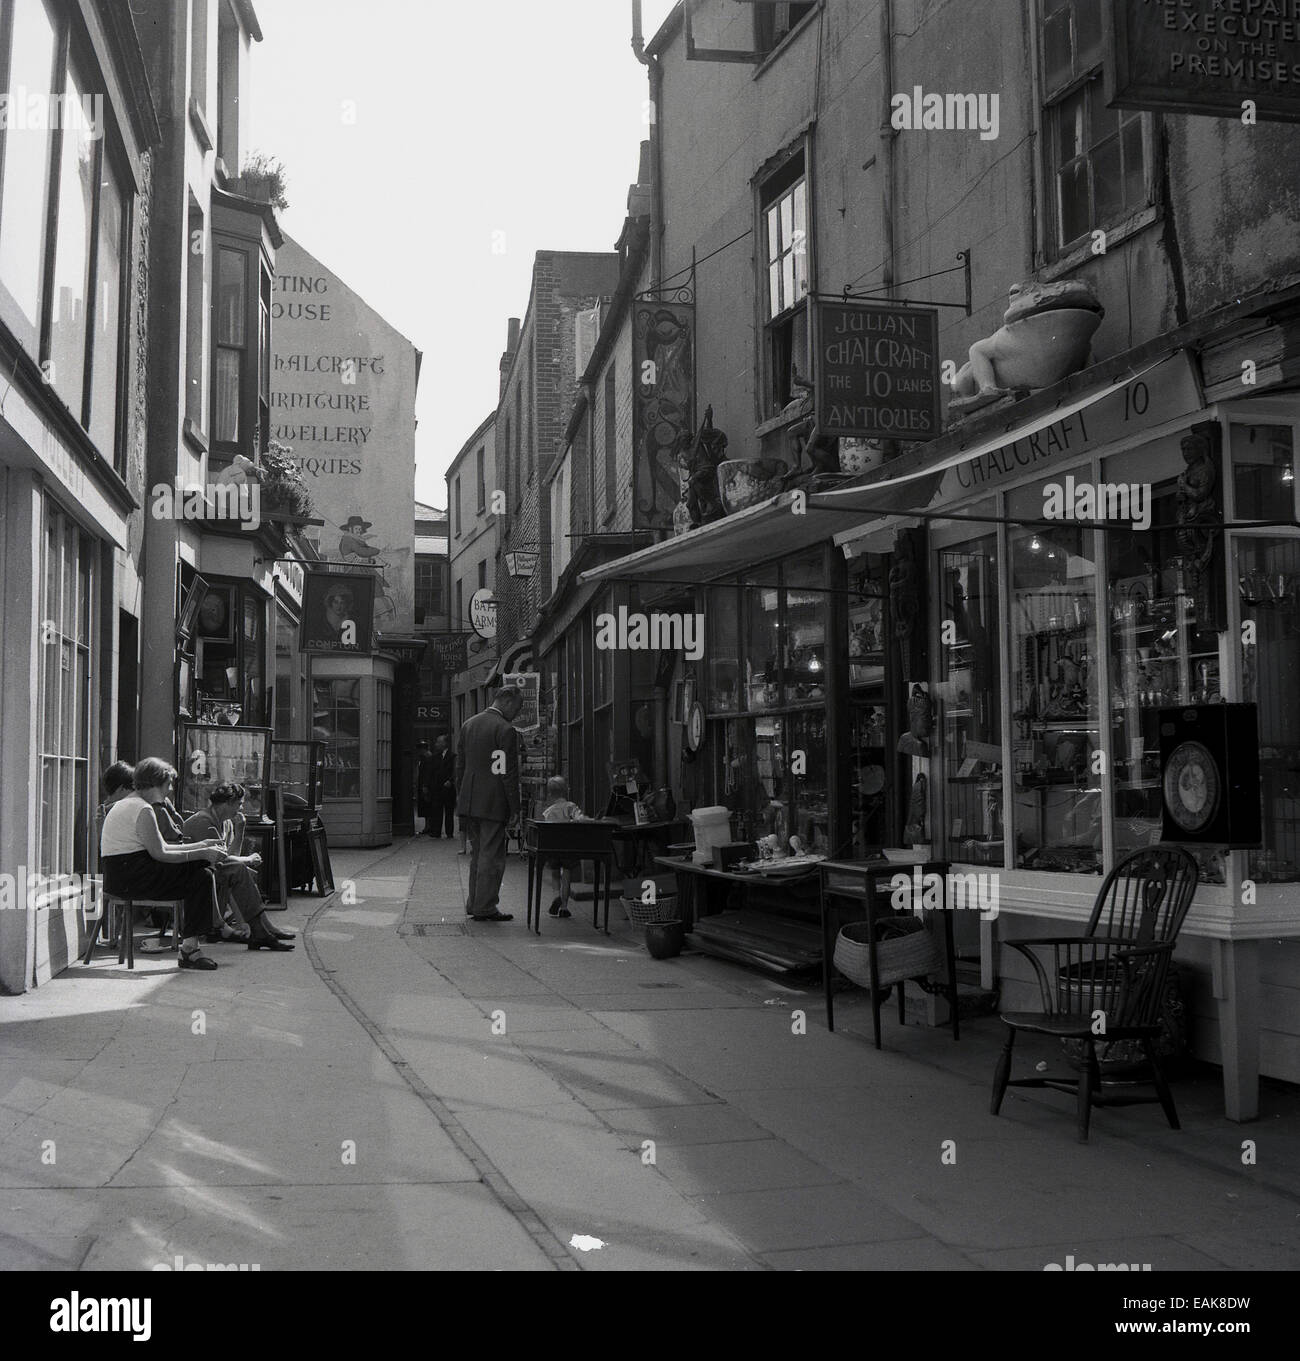 1950s, historical, row of small antique or bric-and-bric shops in The Lanes passageway in the old Old Town, Hastings, - Stock Image